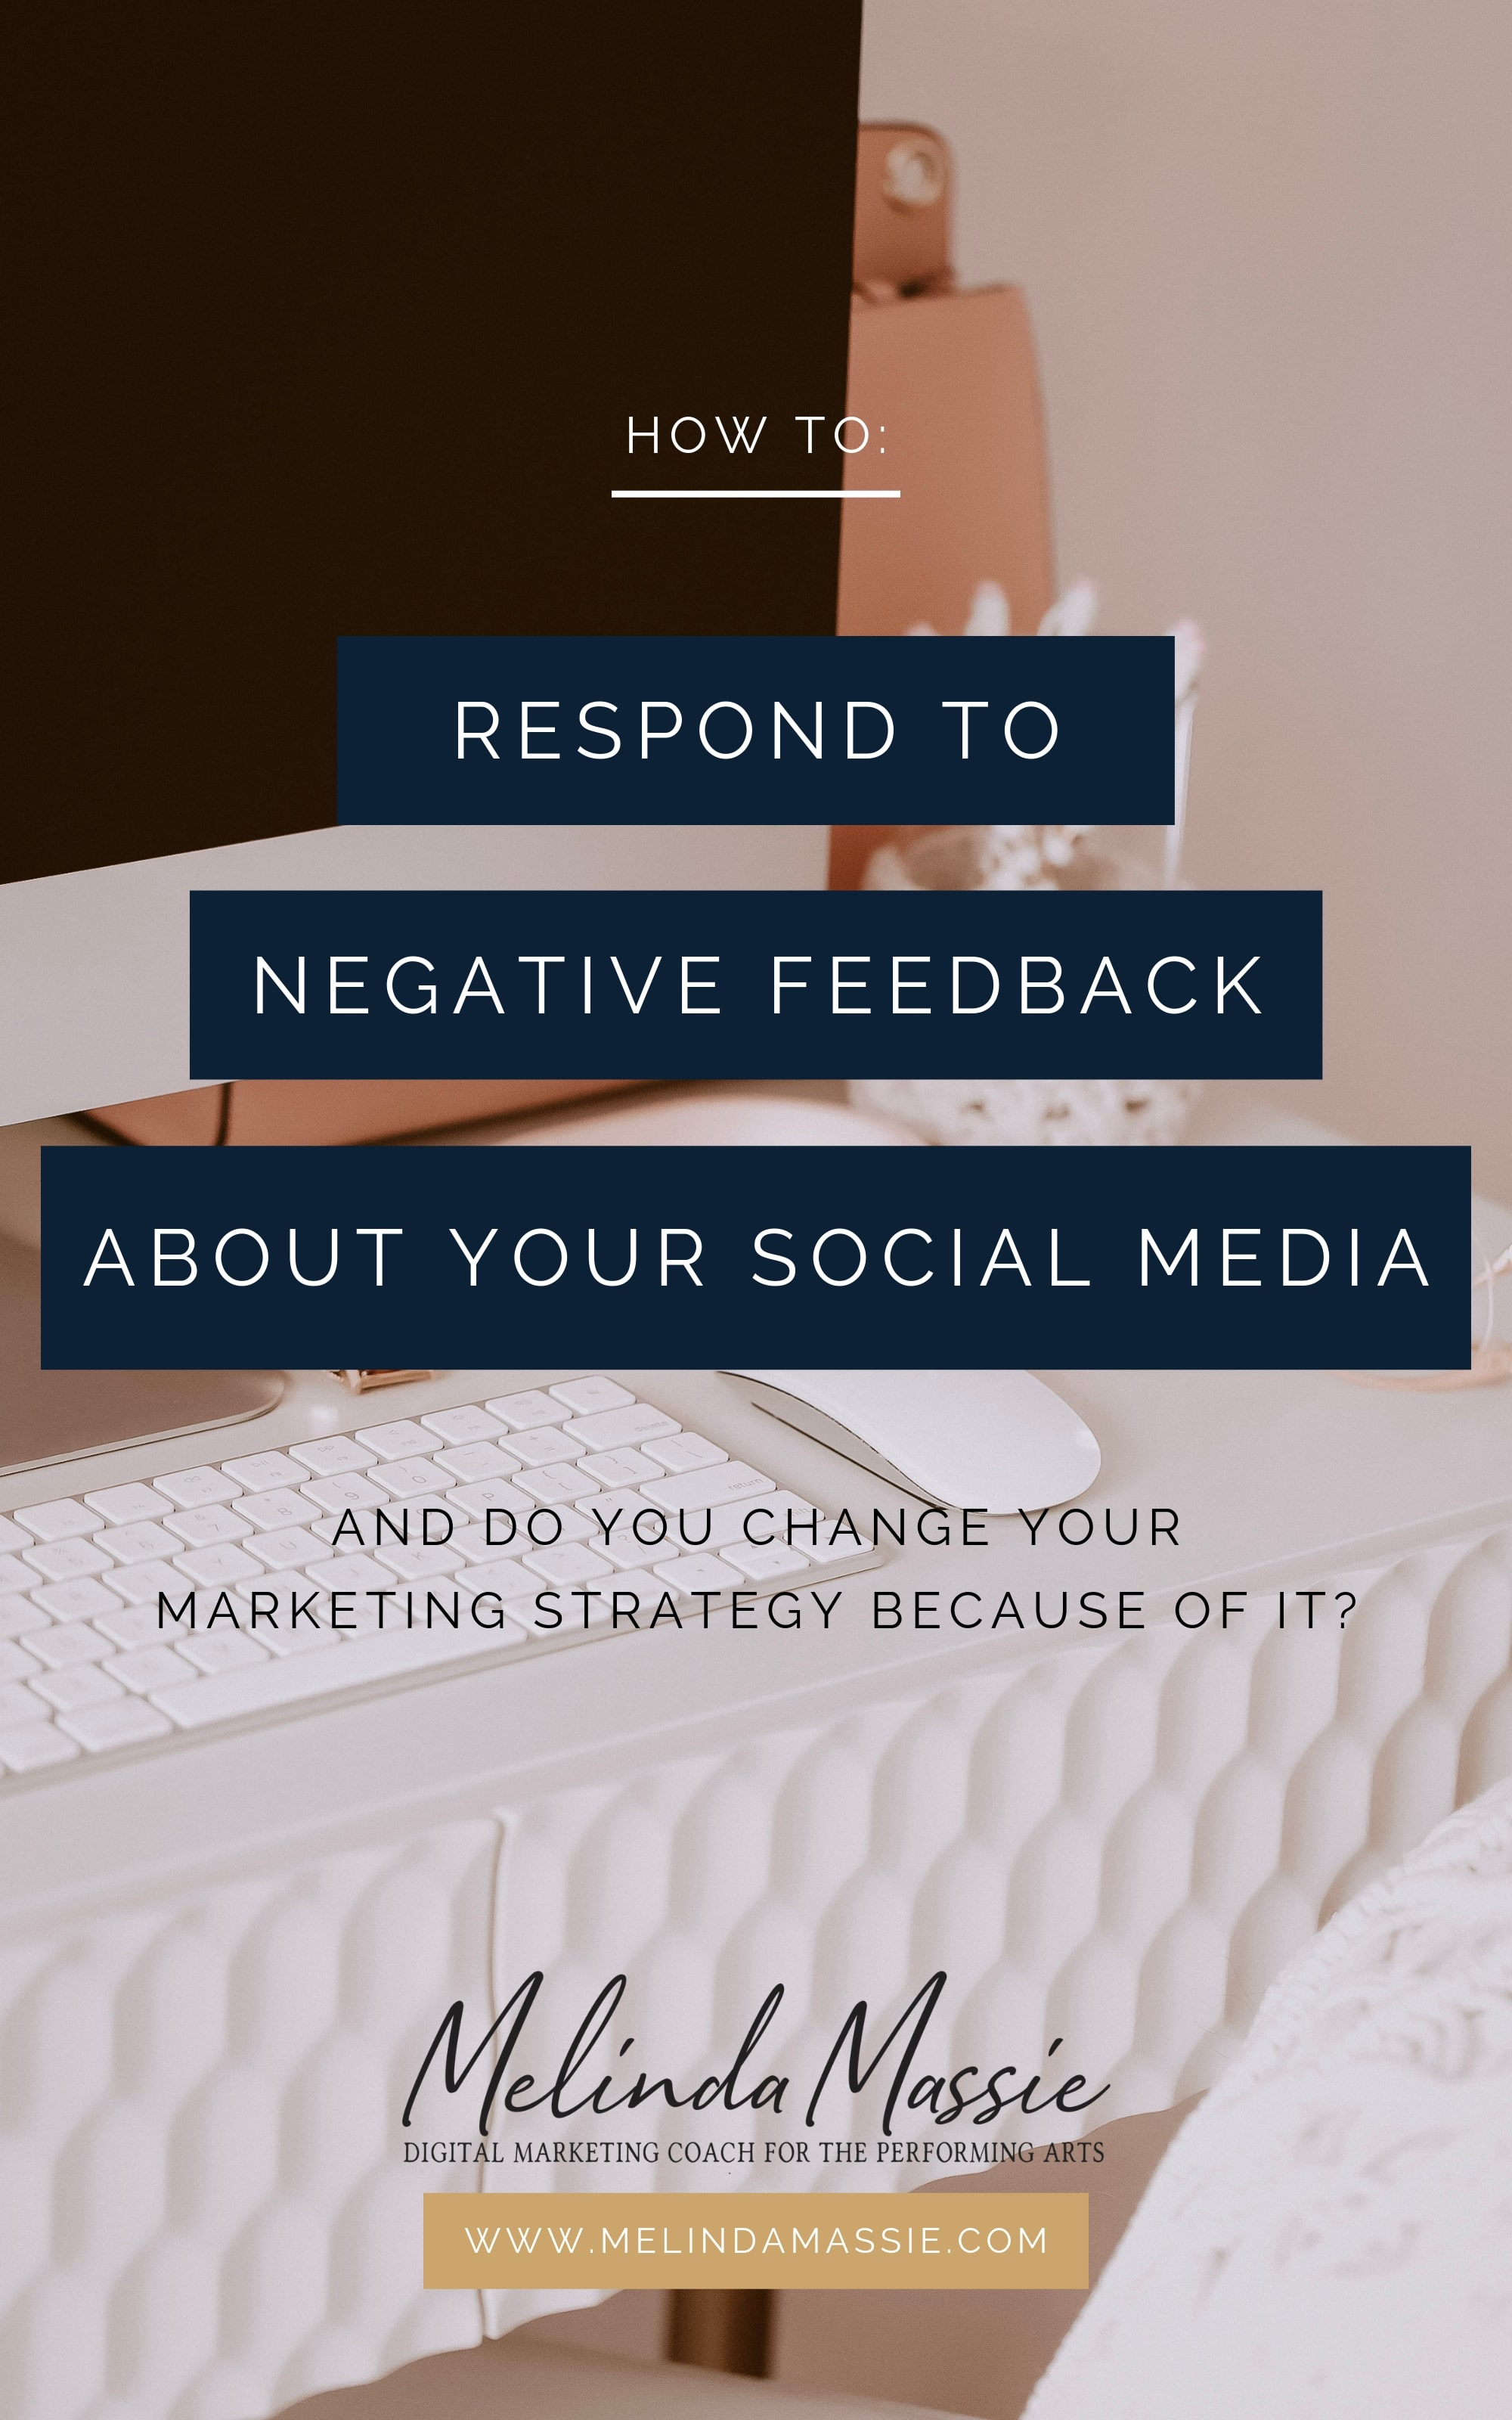 How to Respond to Negative Feedback on your Social Media - Melinda Massie blog